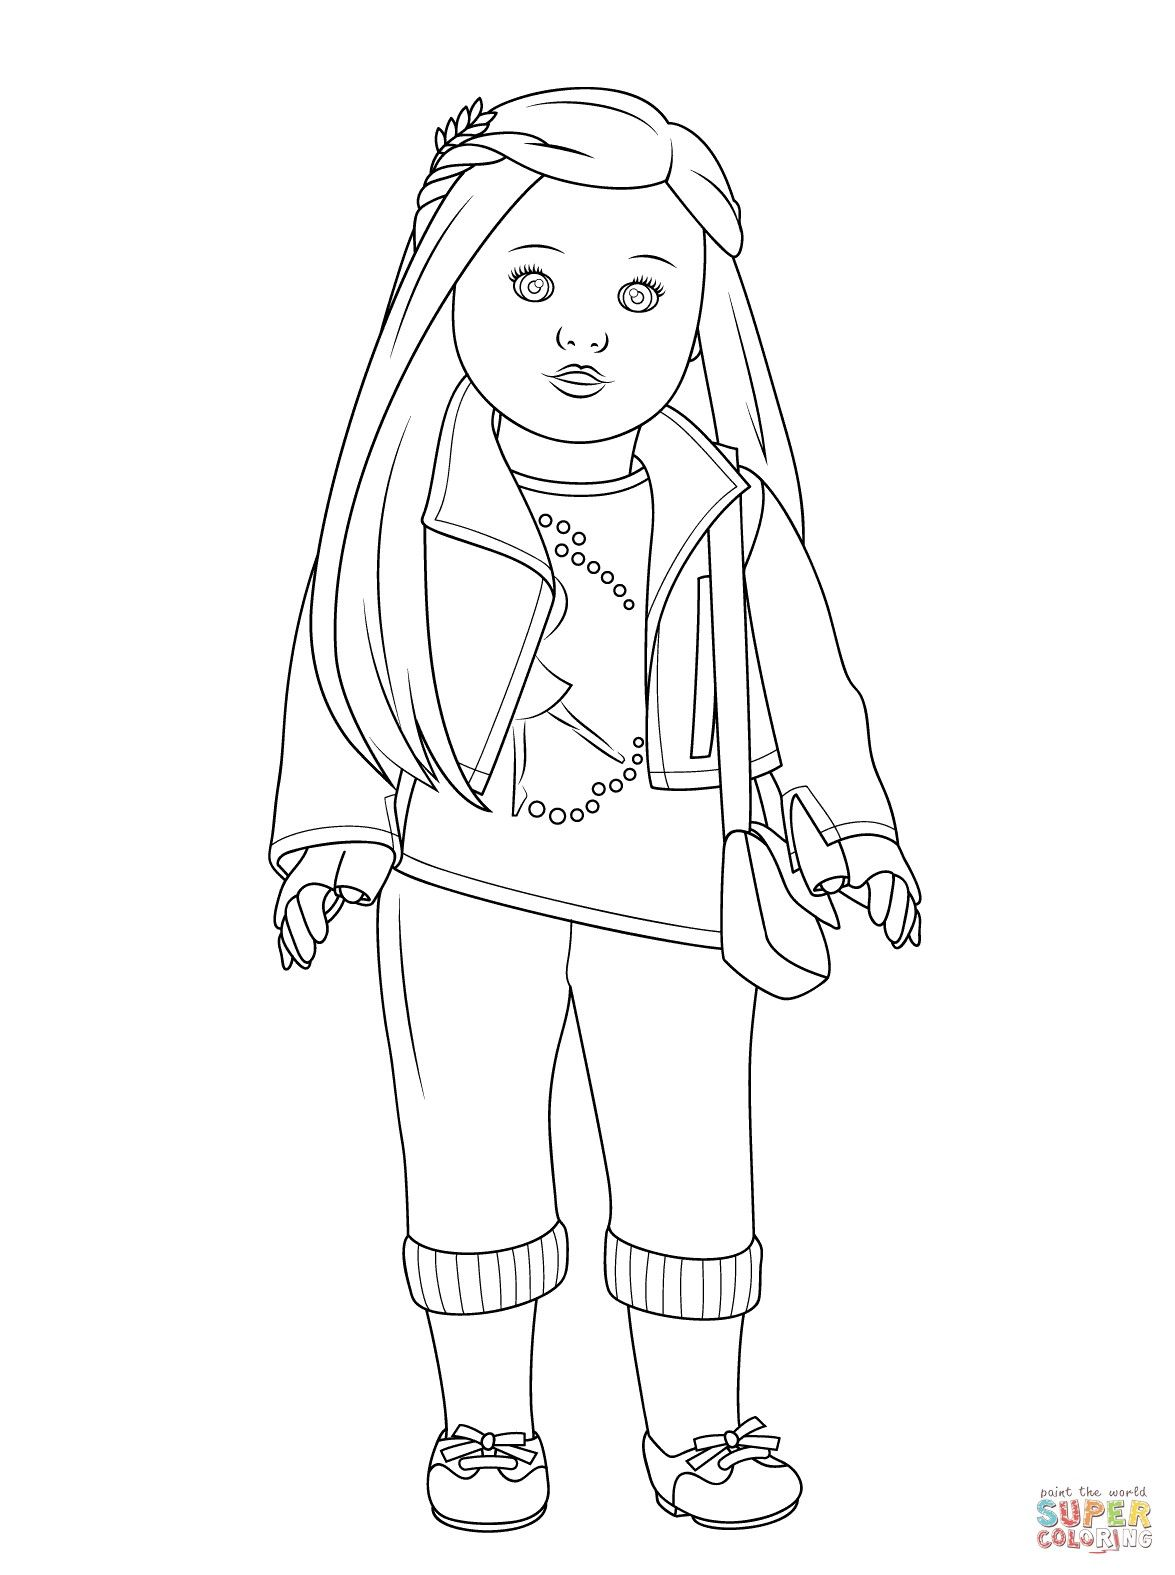 Free Printable American Girl Doll Coloring Pages Through